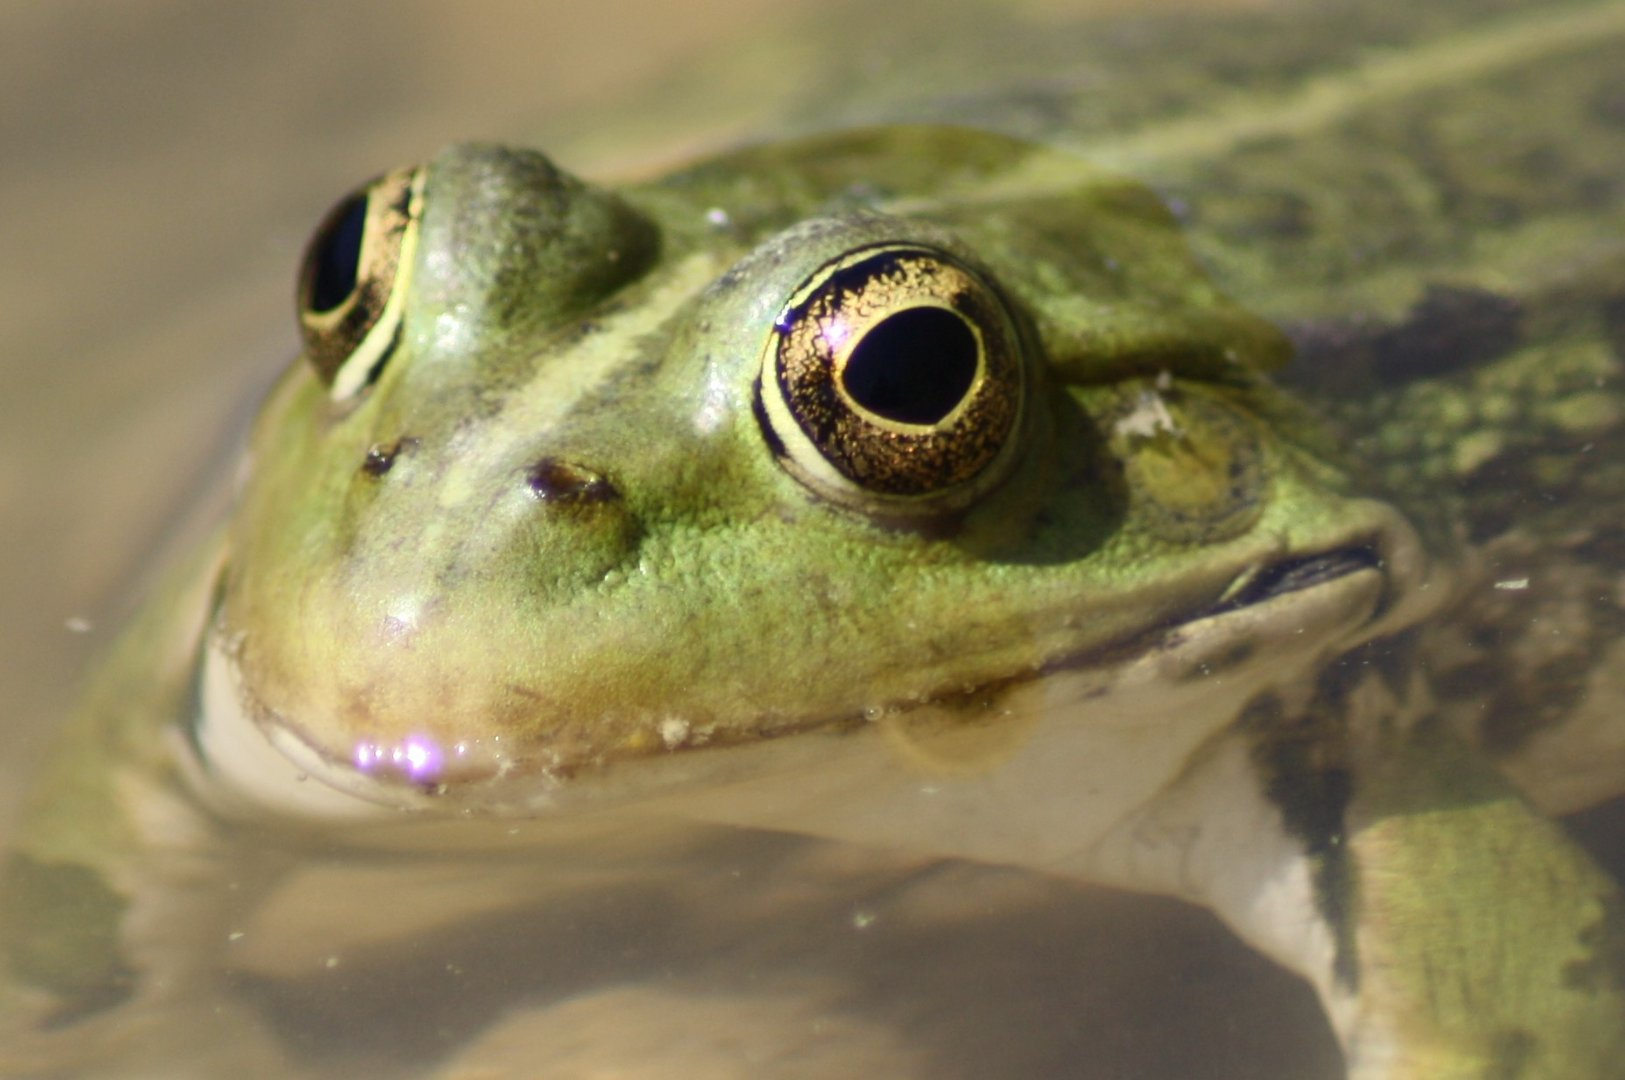 mlle grenouille